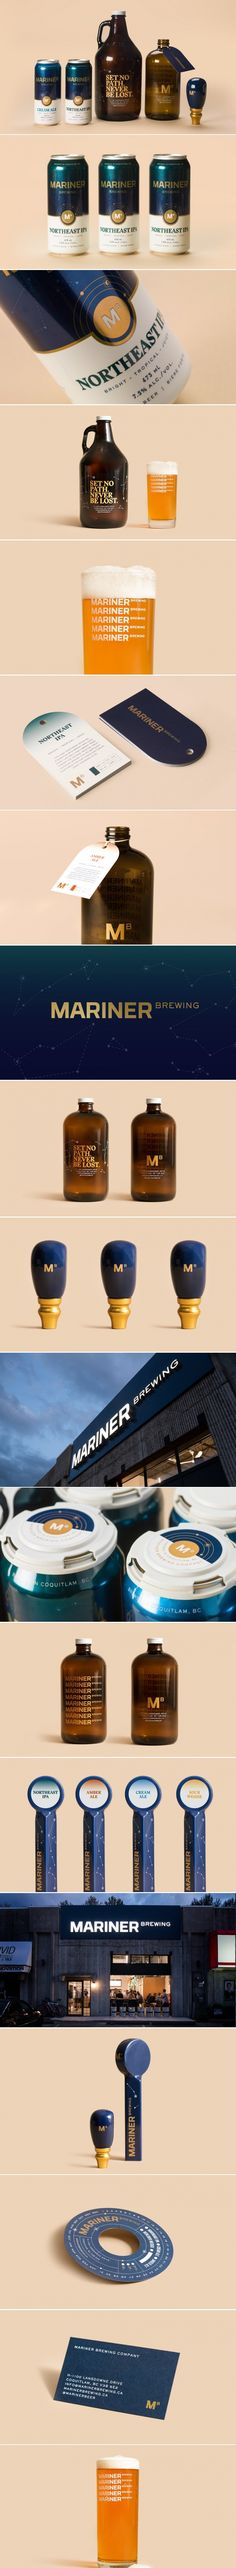 Mariner Brewing Co. Takes Inspiration From The Stars Above — The Dieline | Packaging & Branding Design & Innovation News